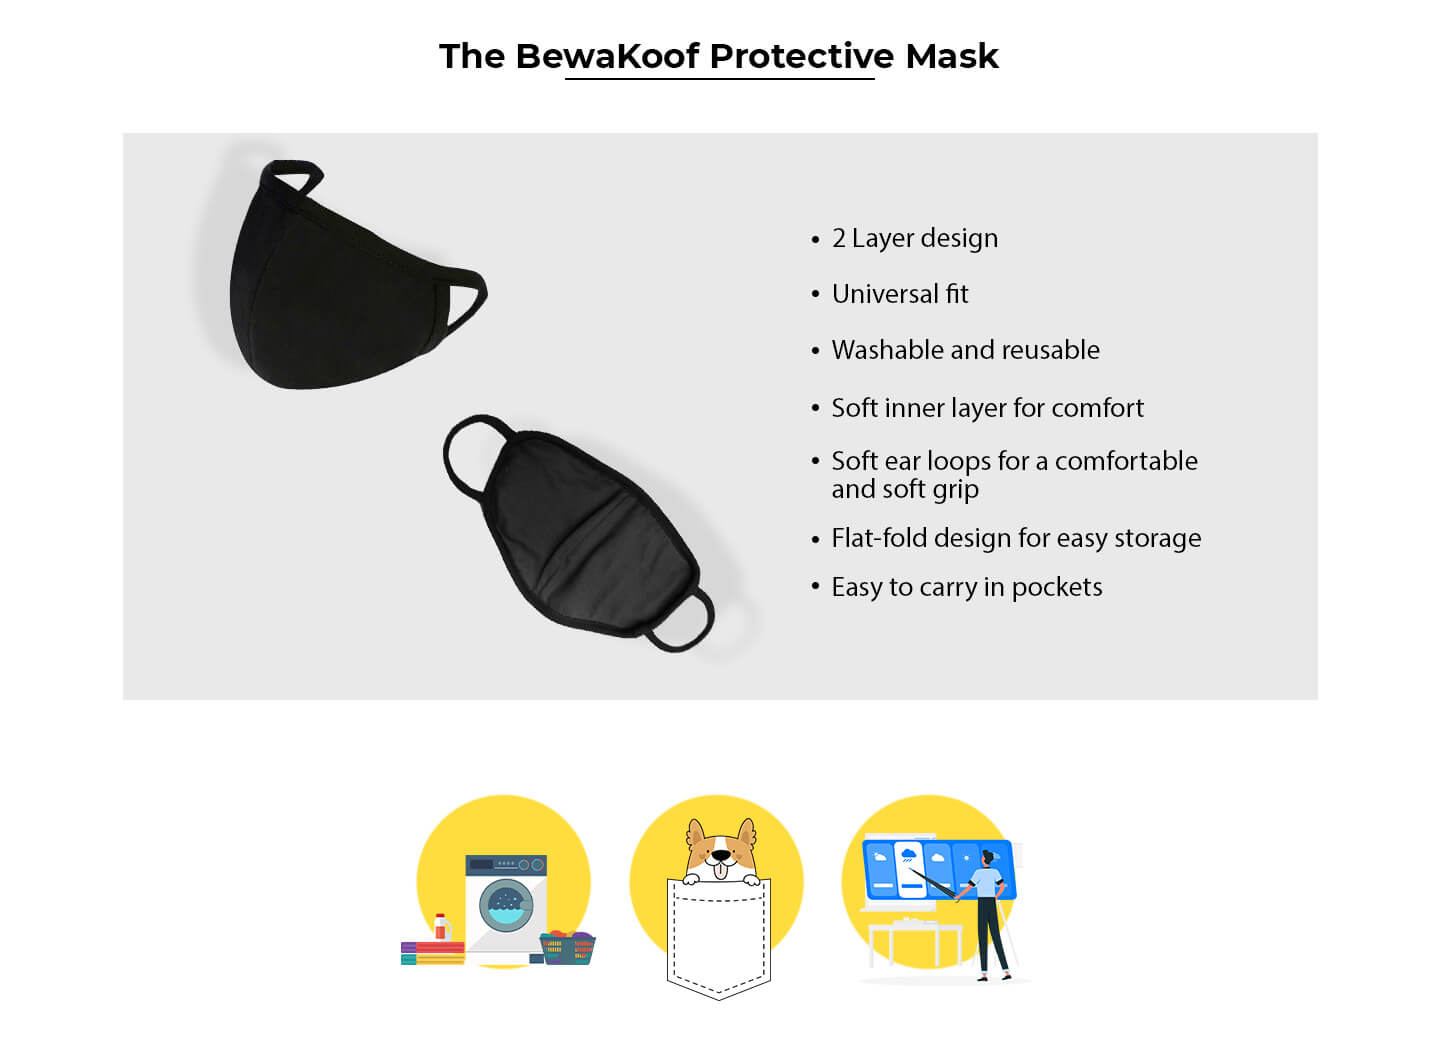 2-Layer Everyday Protective Masks - Pack of 3 (Constellations-Thunder Bolts-Swirl Pattern) Description Image Website 0@Bewakoof.com